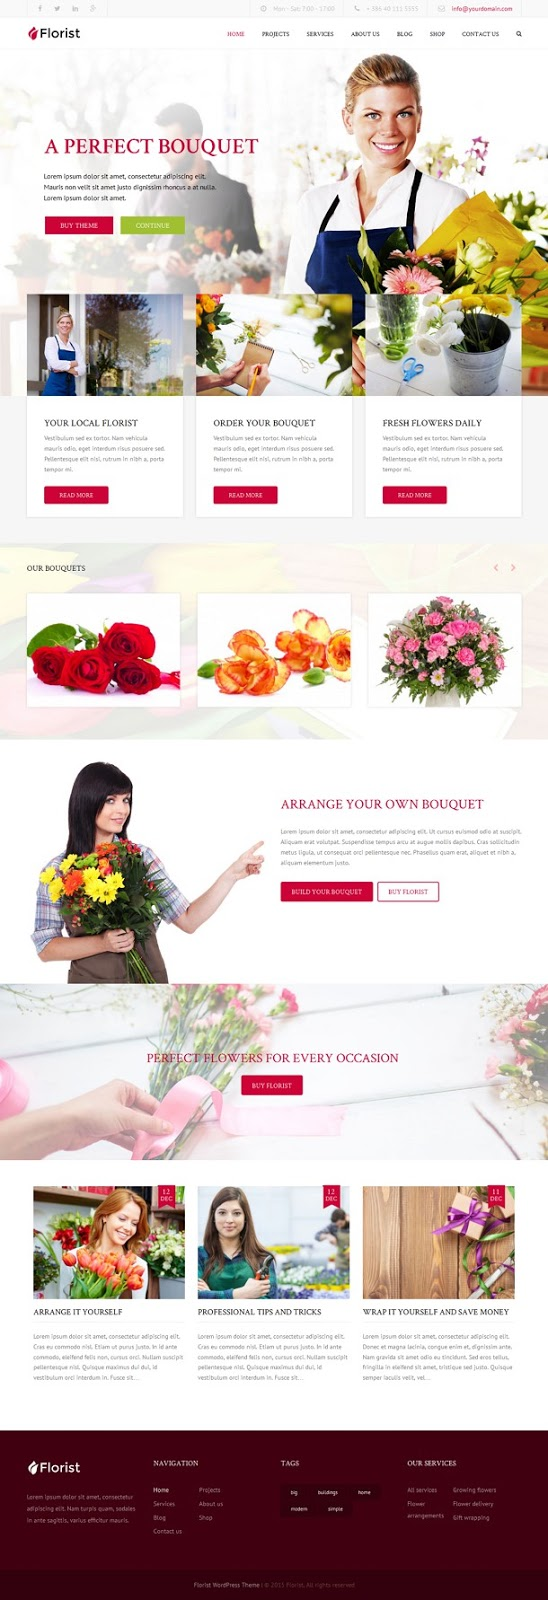 Florist WP Florist & Flower Shop Website Theme